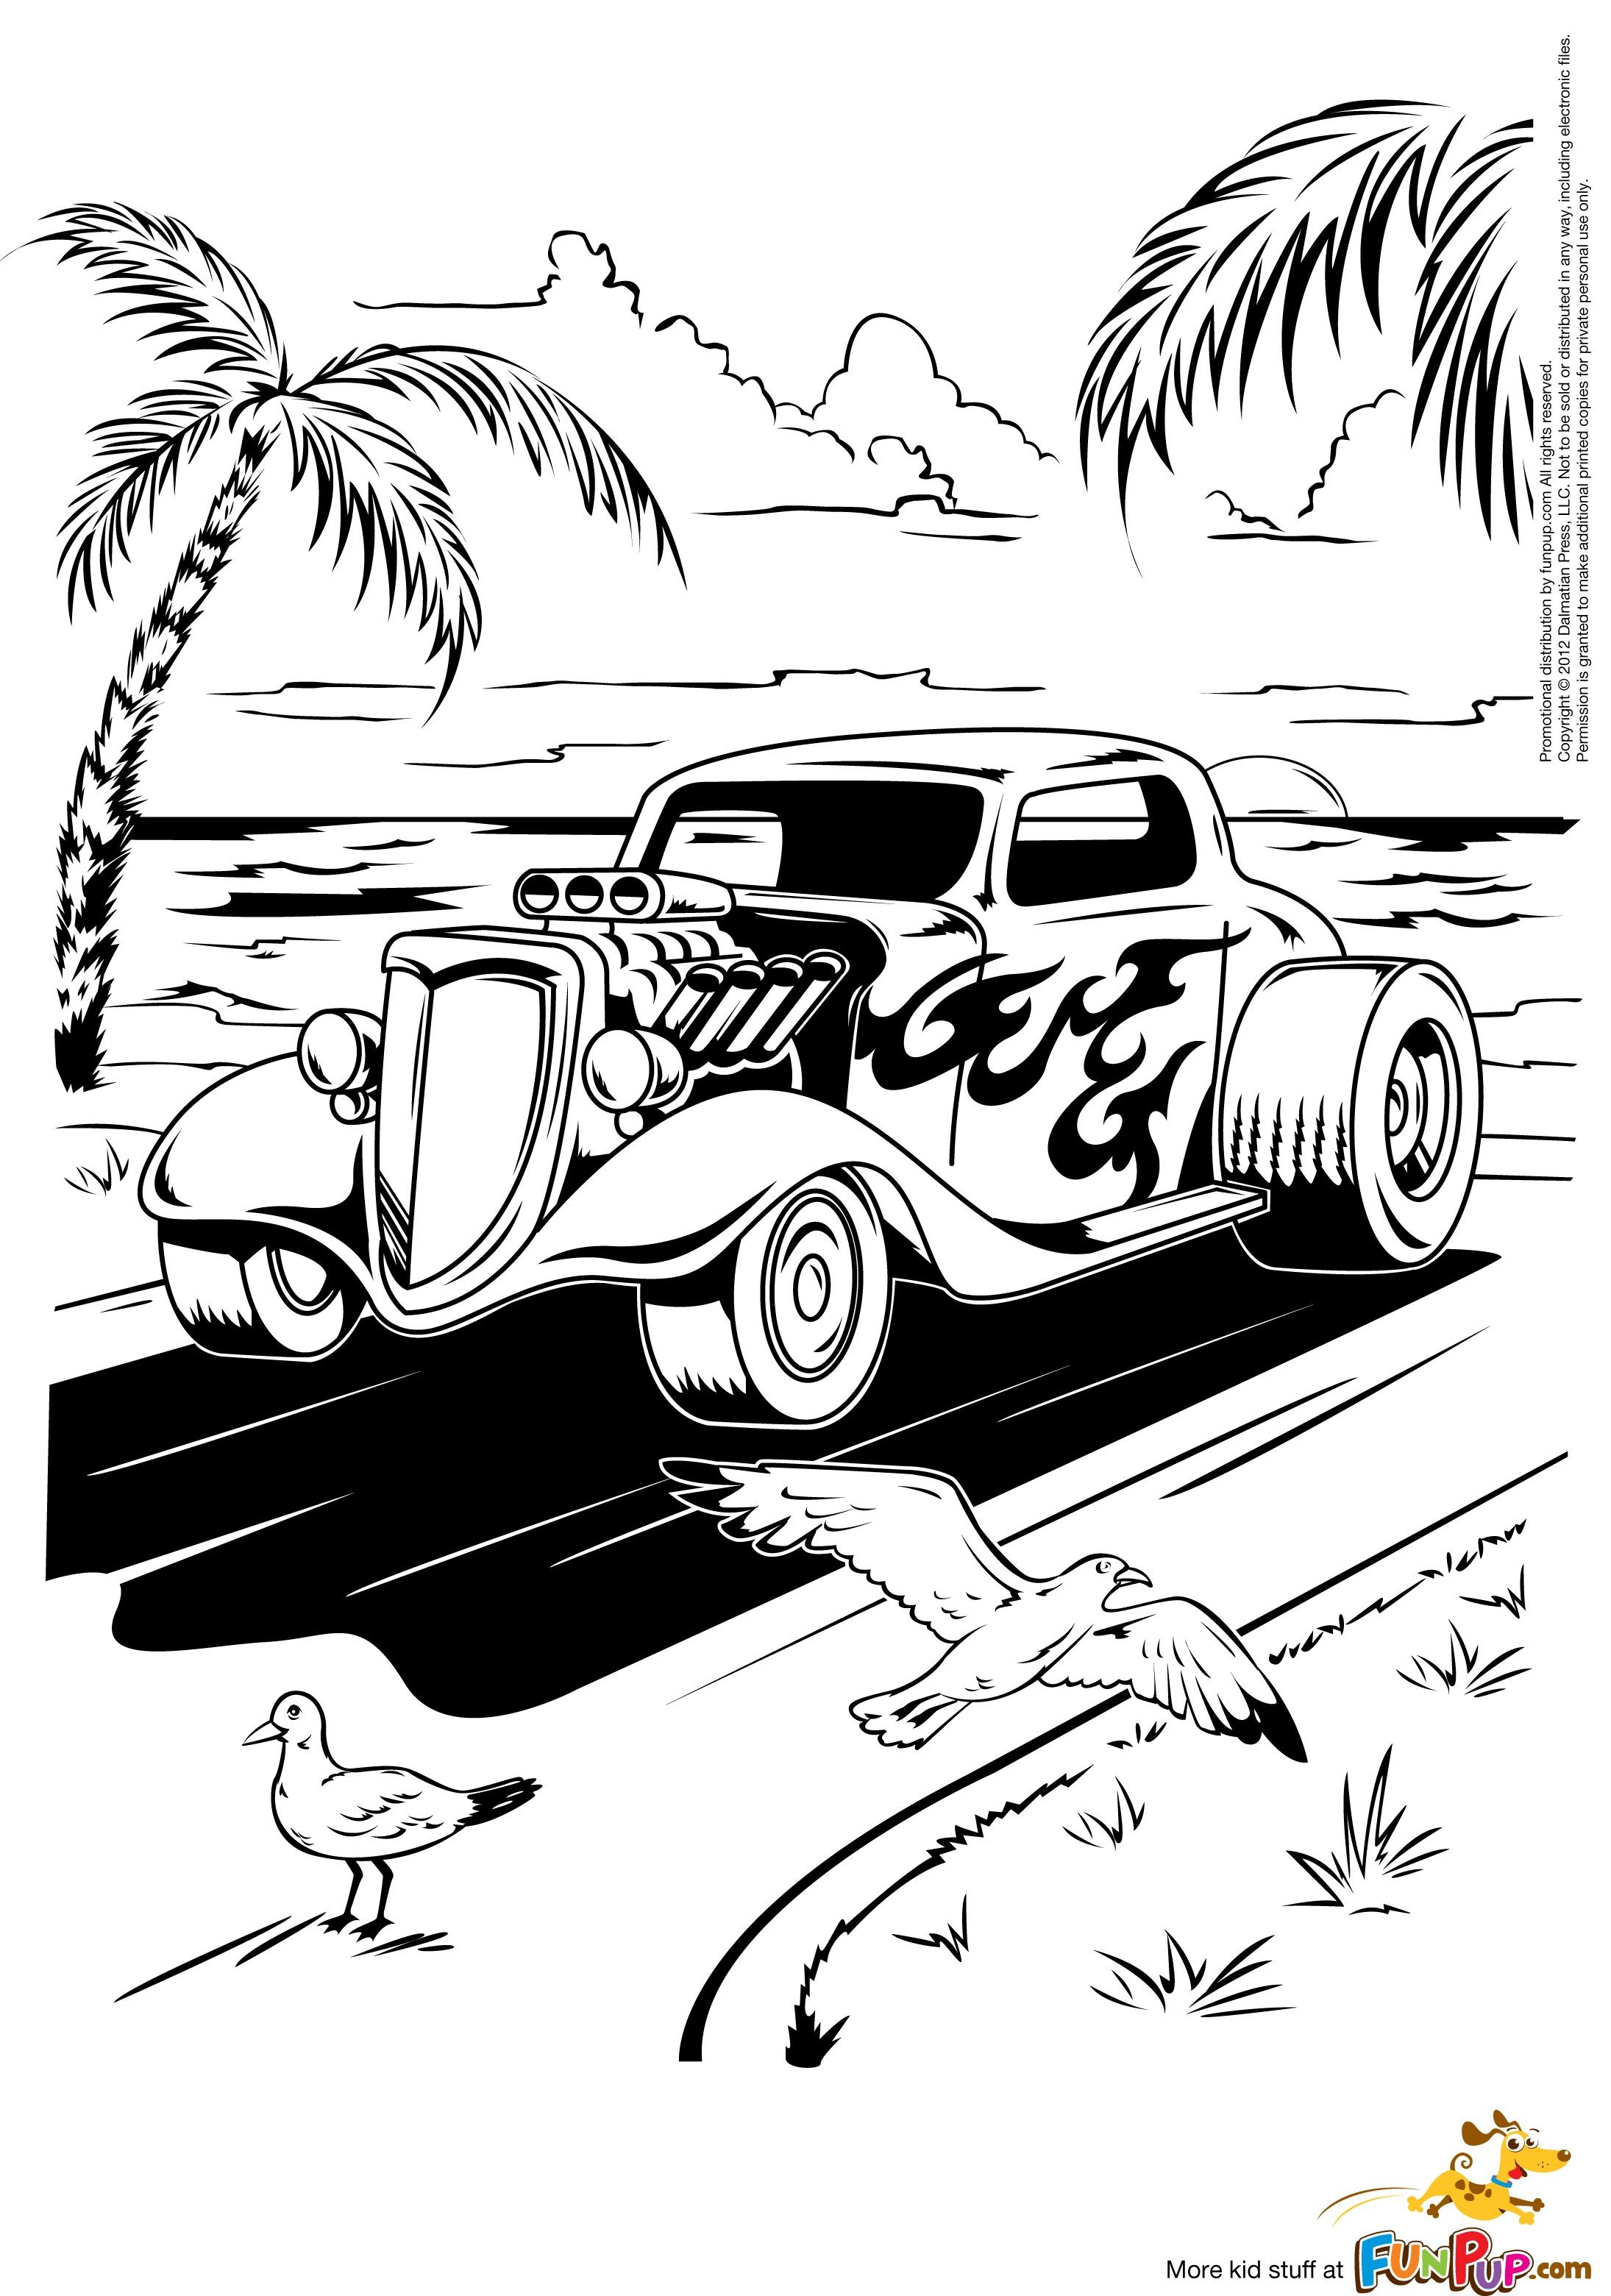 hot rod coloring pages Hot Rod Coloring Page | Free Printable Coloring Pages | Pinterest  hot rod coloring pages